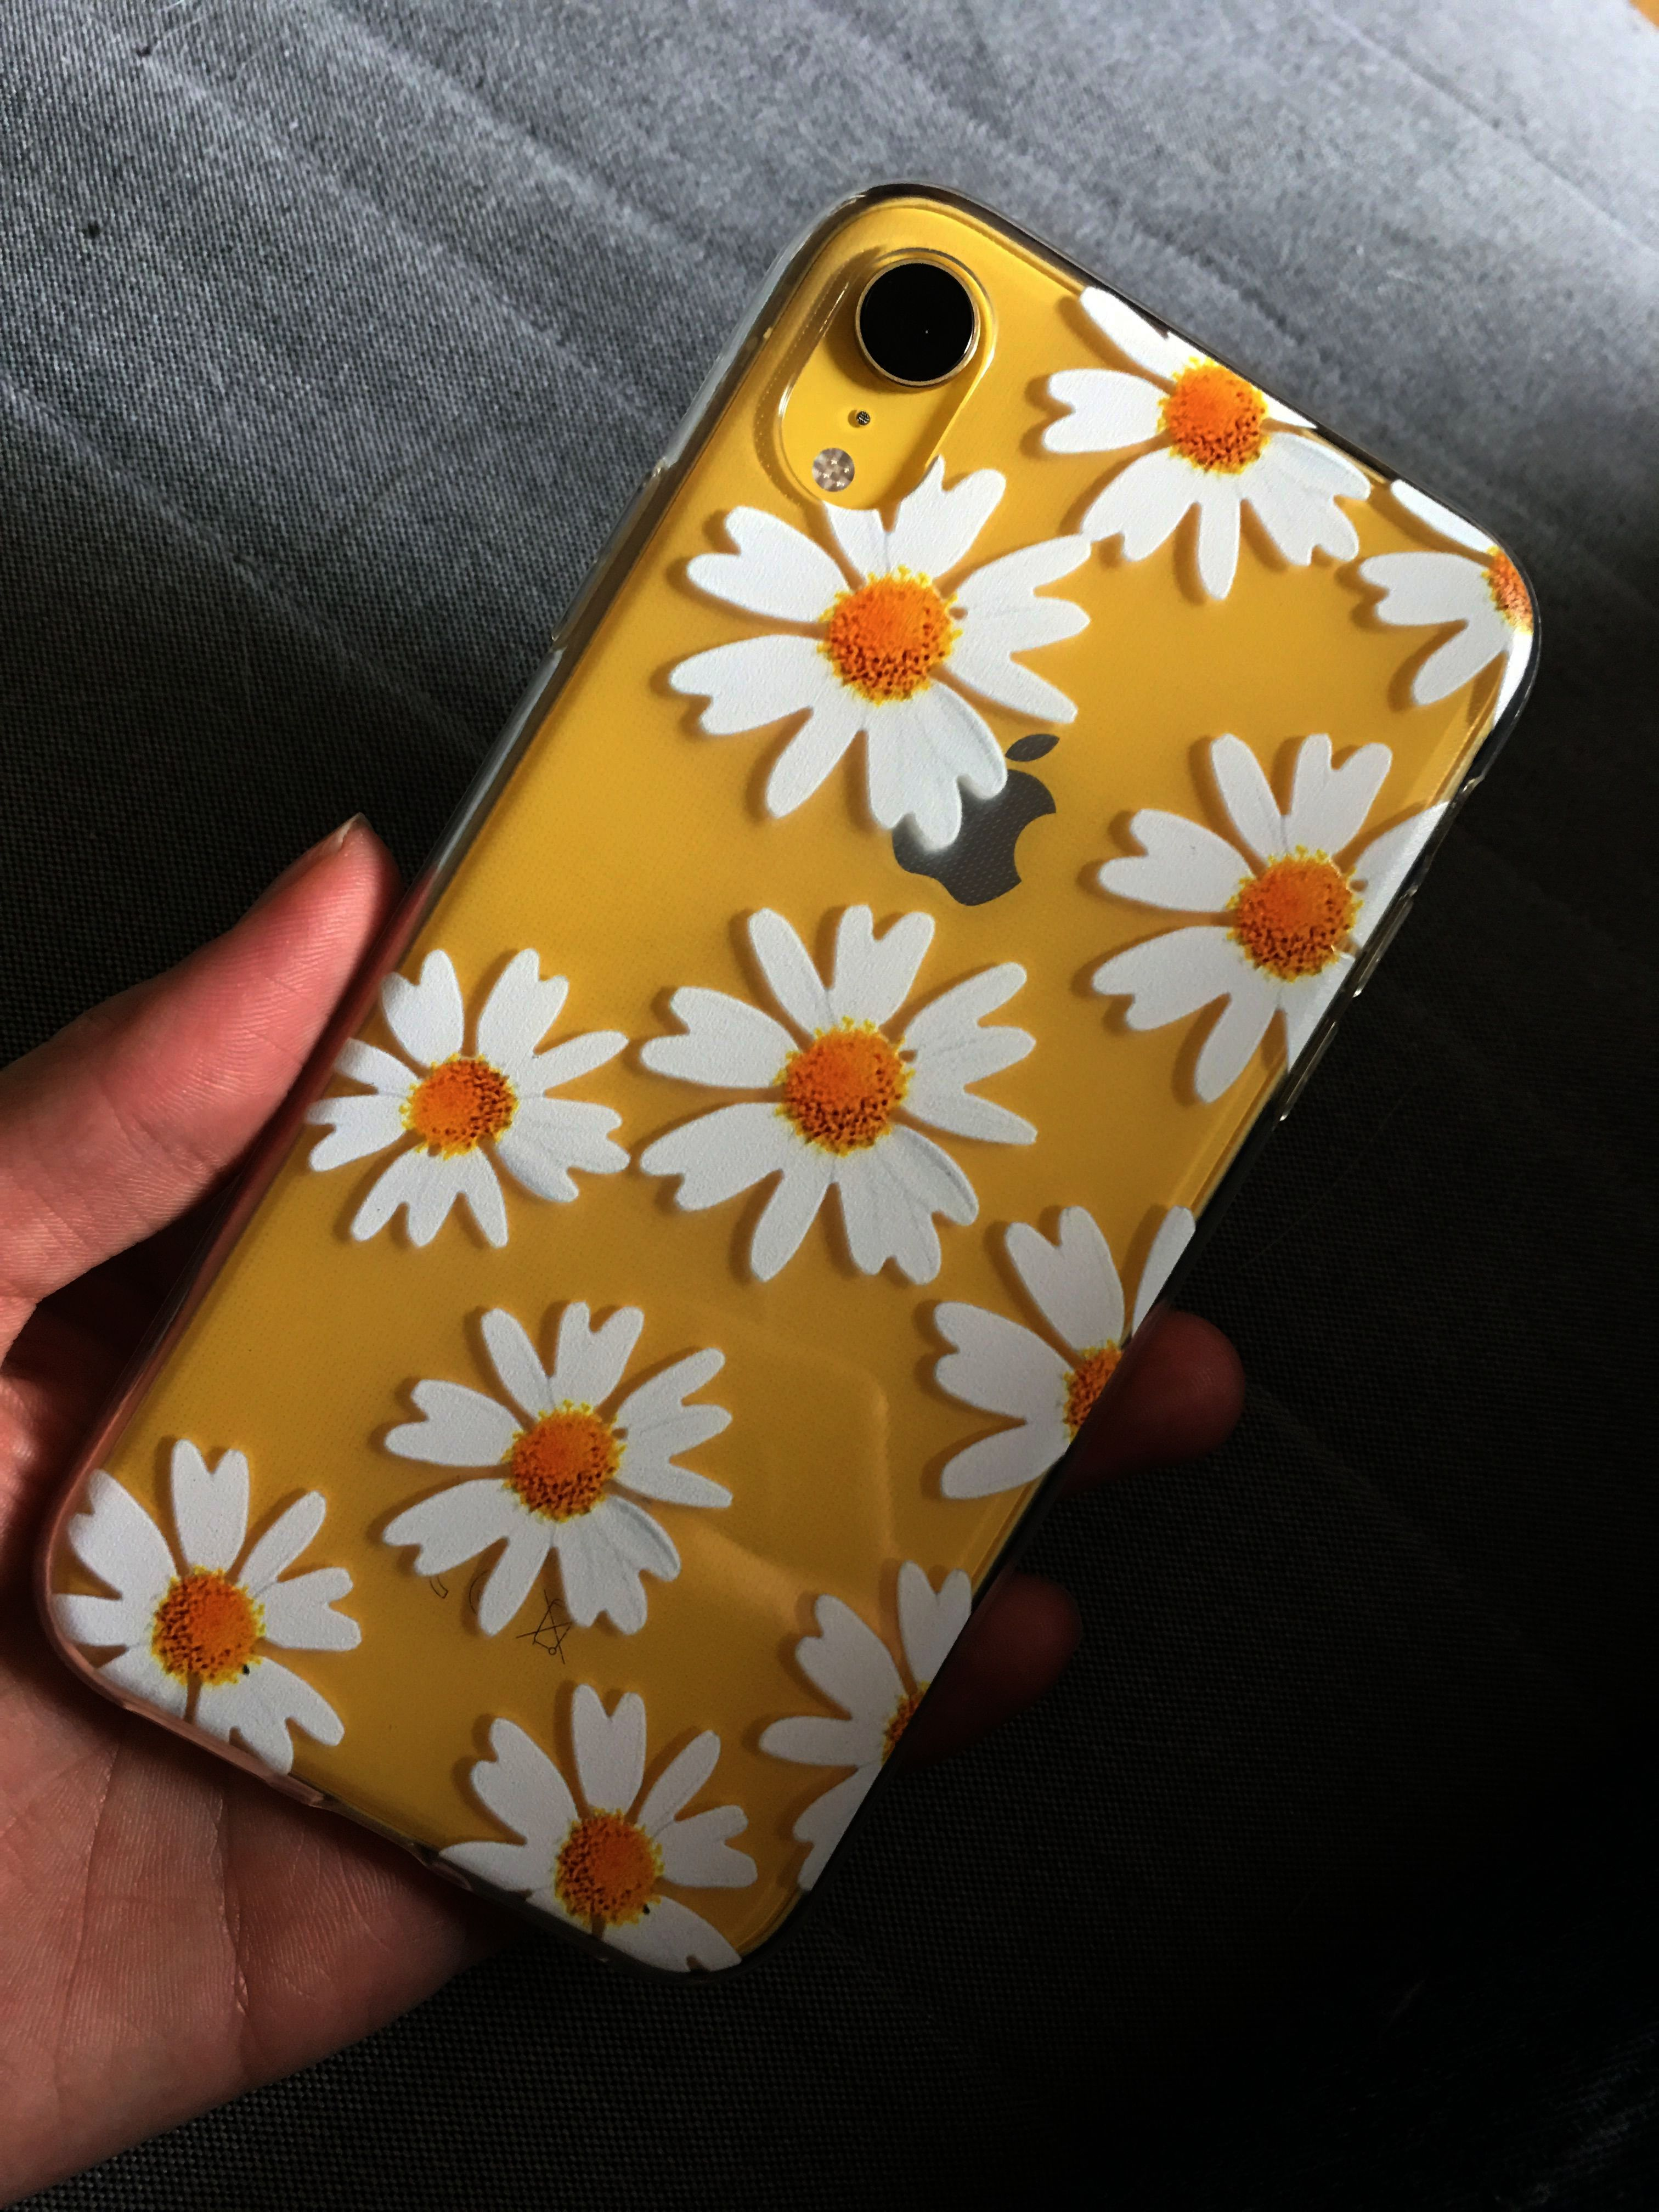 Gadget company meaning an iphone 7 accessories philippines